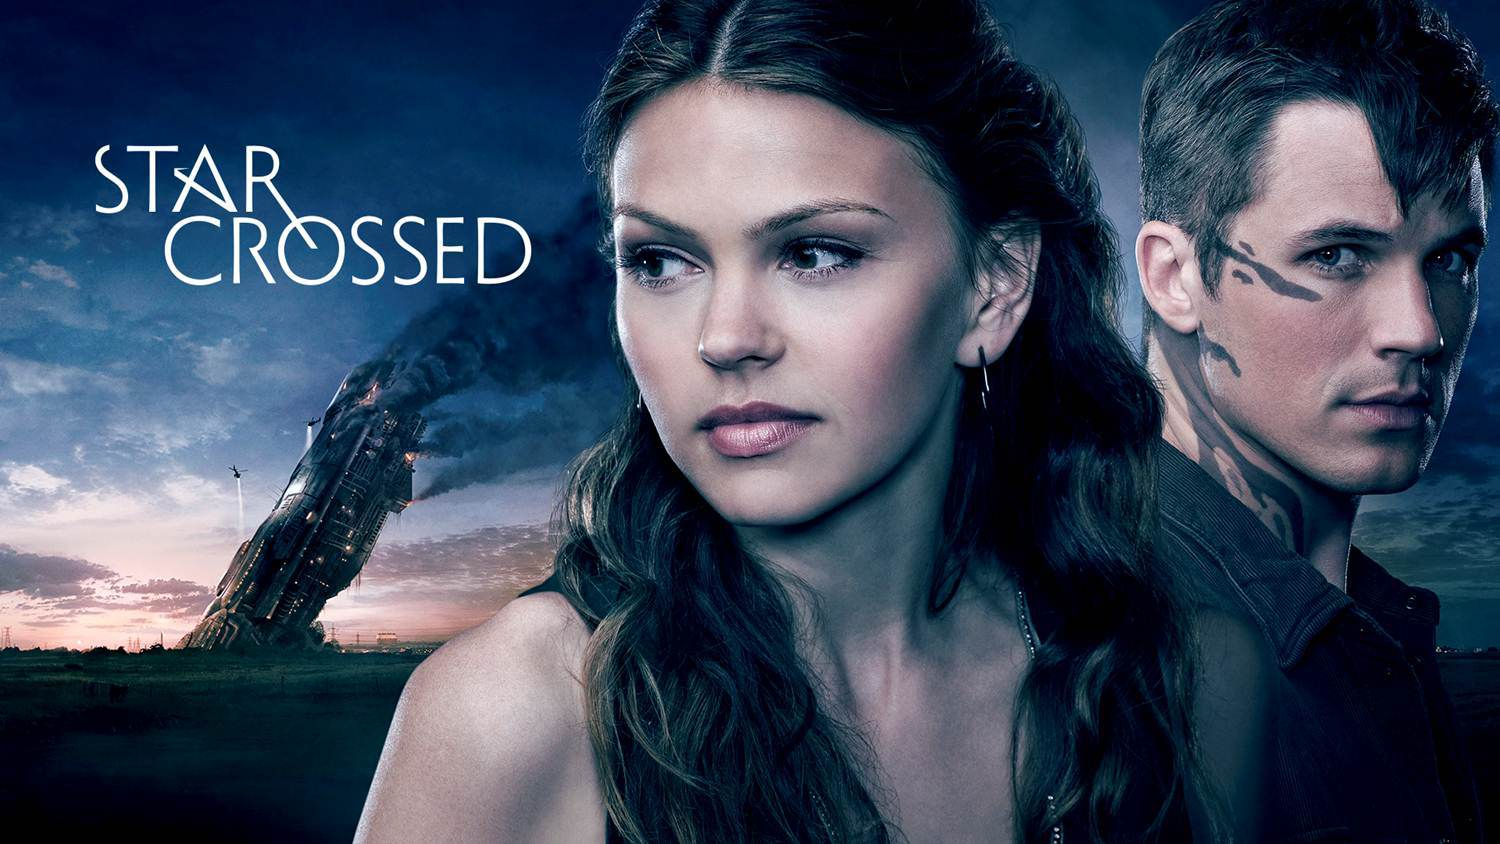 star-crossed-dl hi res